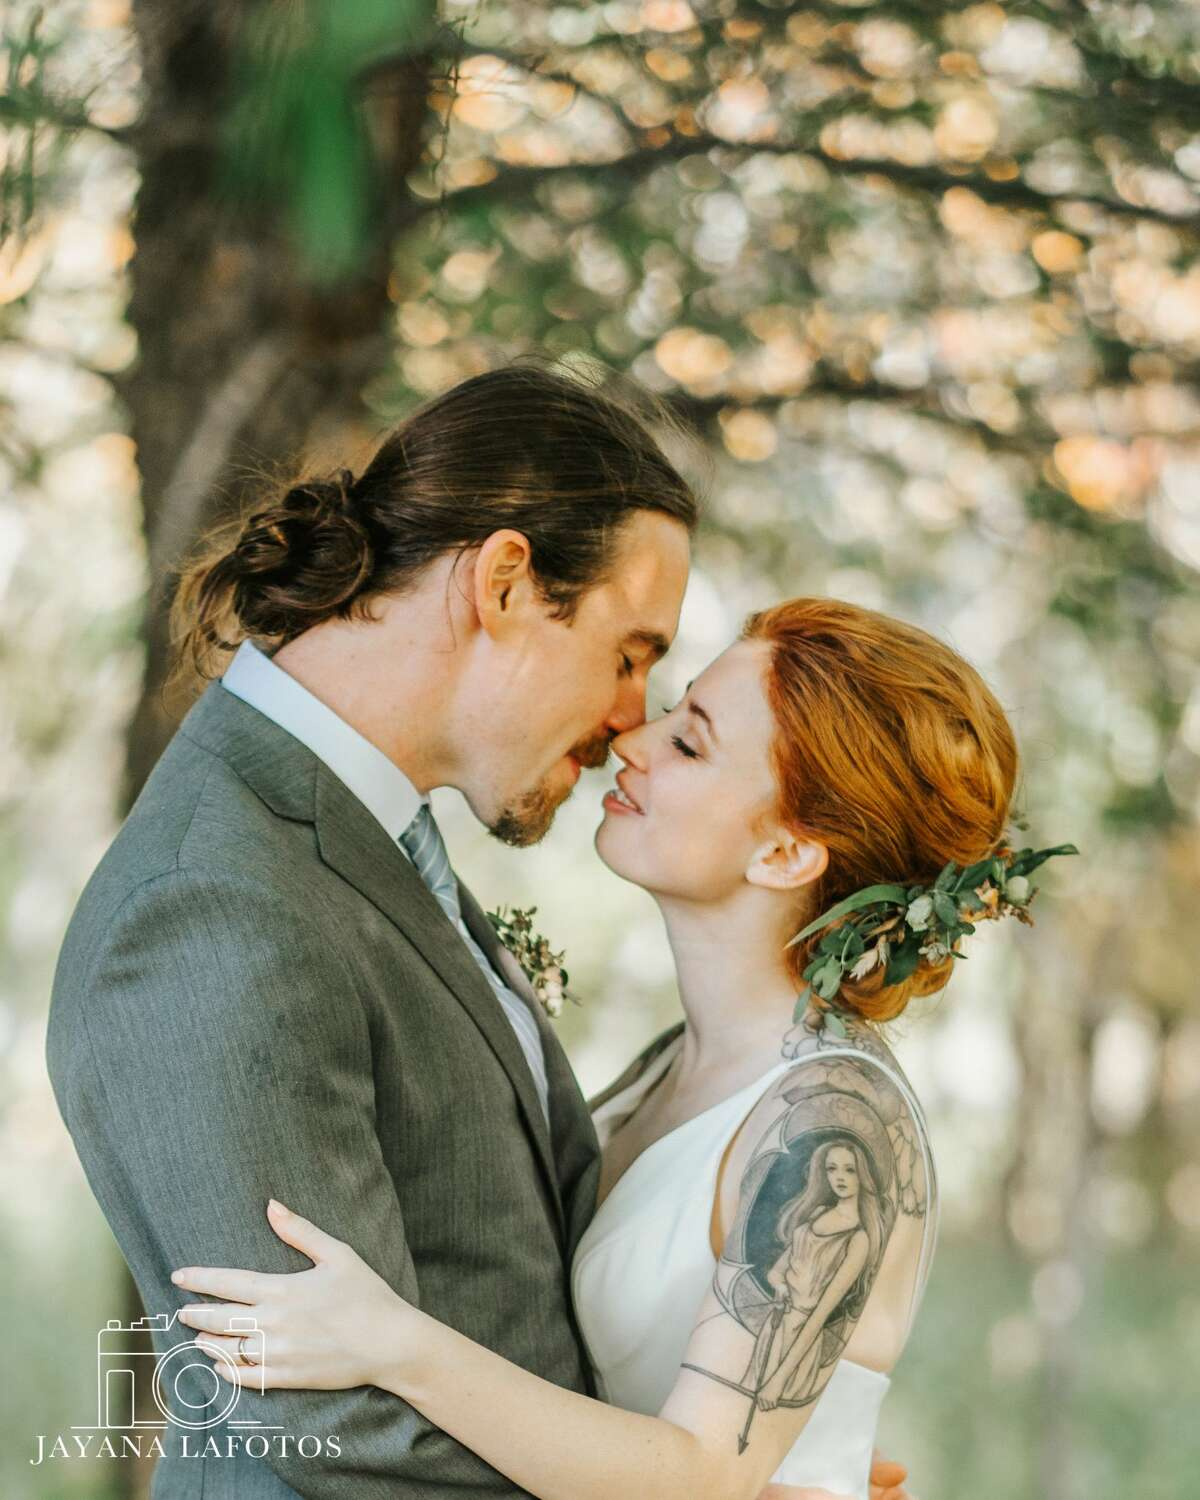 Emily and Chris Scully were married in Ancramdale on Oct. 10, 2020.